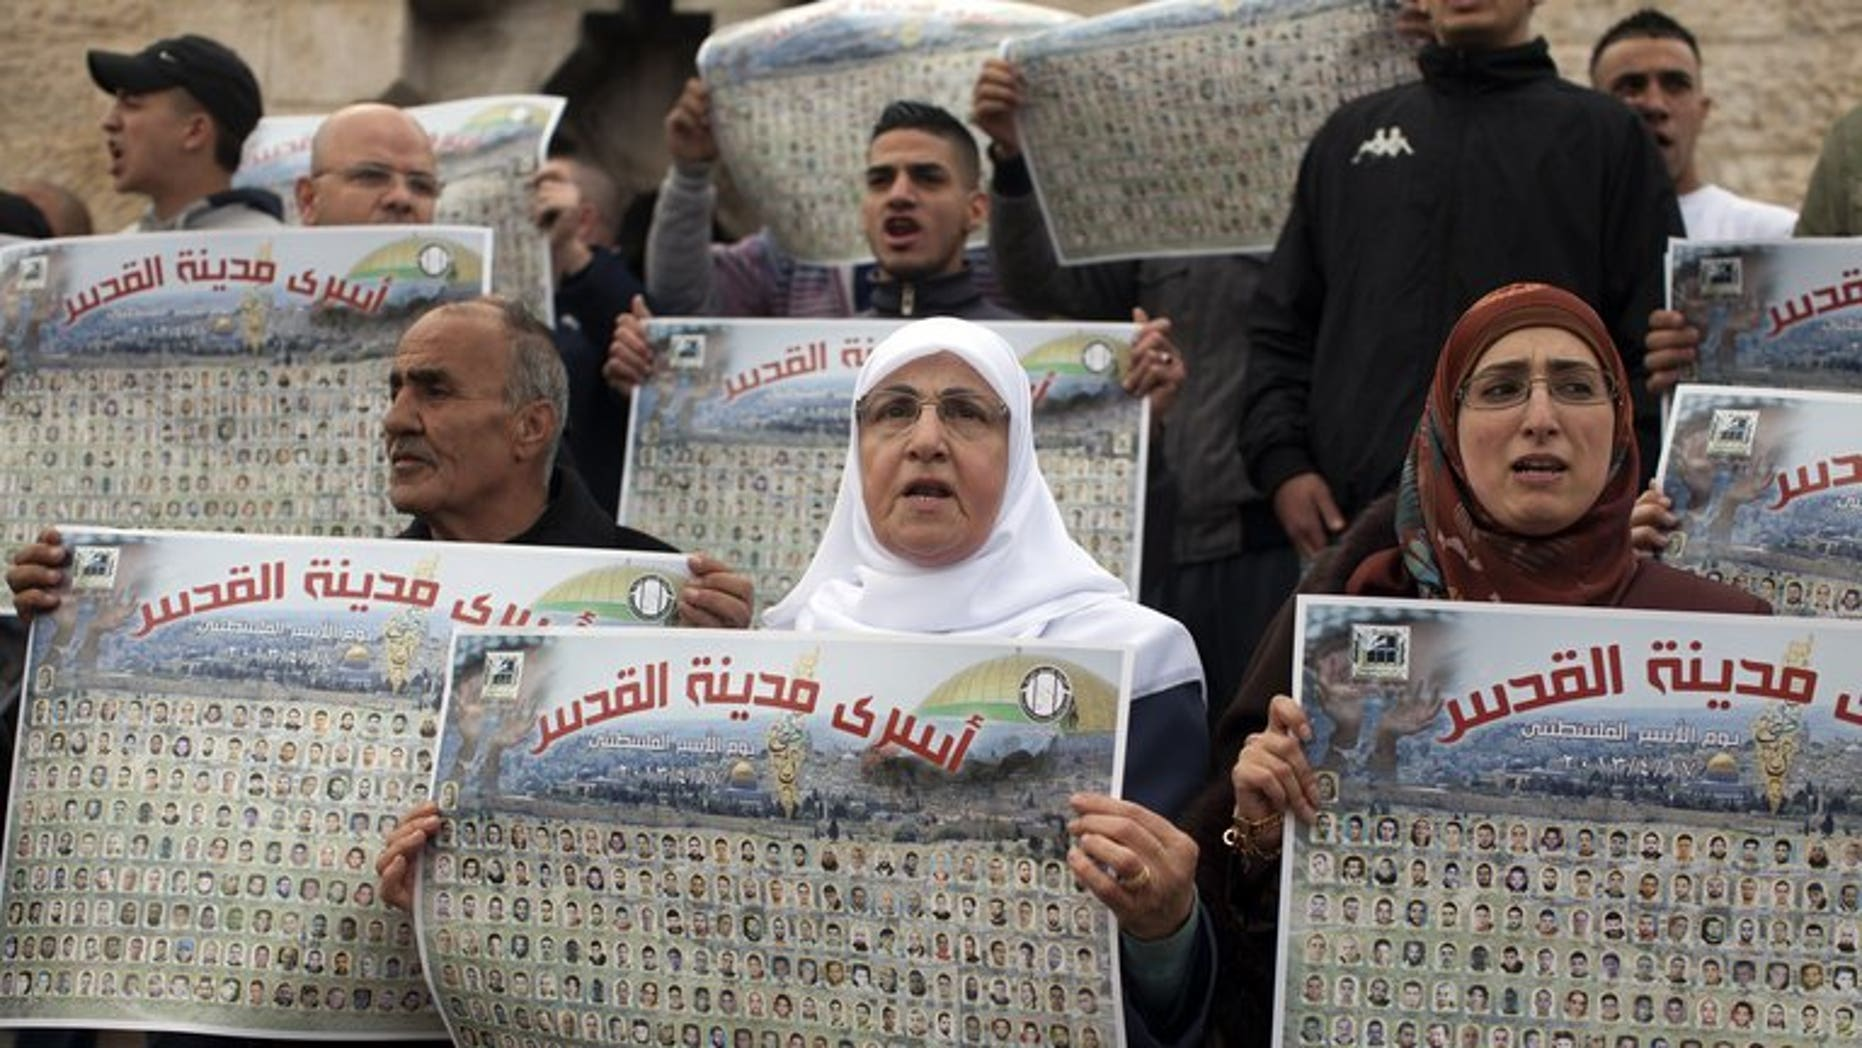 Palestinians hold portraits of relatives jailed in Israeli prisons as they demand their release in the old city of Jerusalem on April 17, 2013. Israel is set to decide on the release of around 80 long-serving Palestinian prisoners ahead of renewed peace talks, an Israeli official said on Monday.